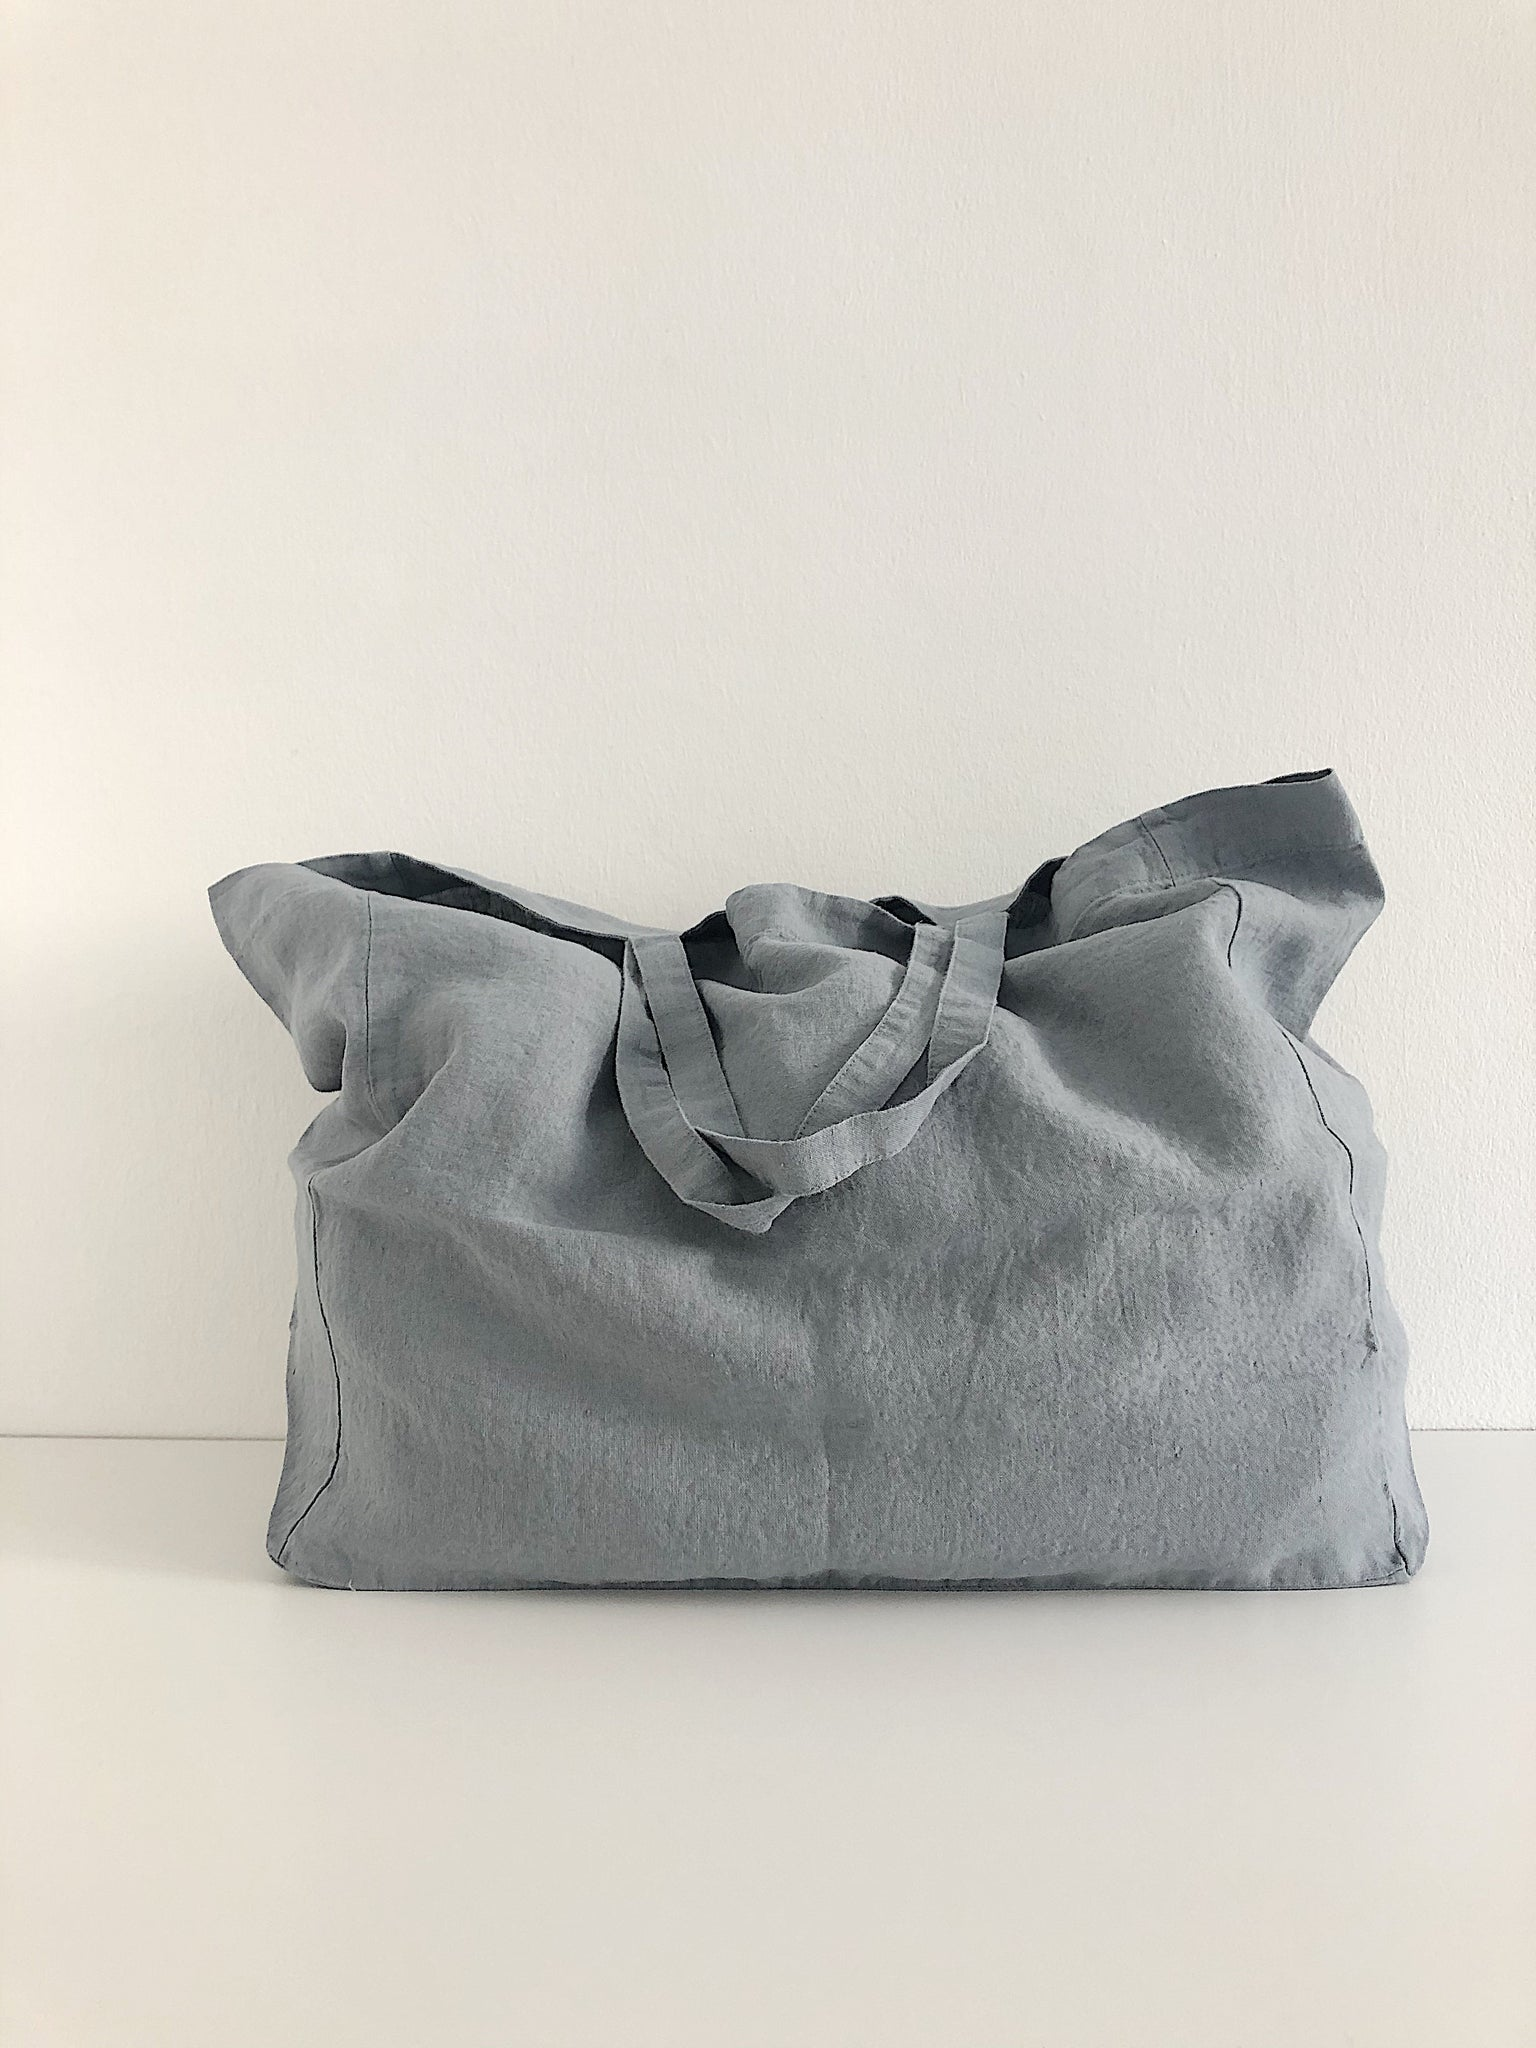 Linge Particulier Bag Large Blue Grey  Perfect for the weekend, beach or everyday  100% washed linen  Dimensions: 47 x 41 x 20 cm  Made in Europe Leinentasche Beutel blau grau perfekt für den Strand